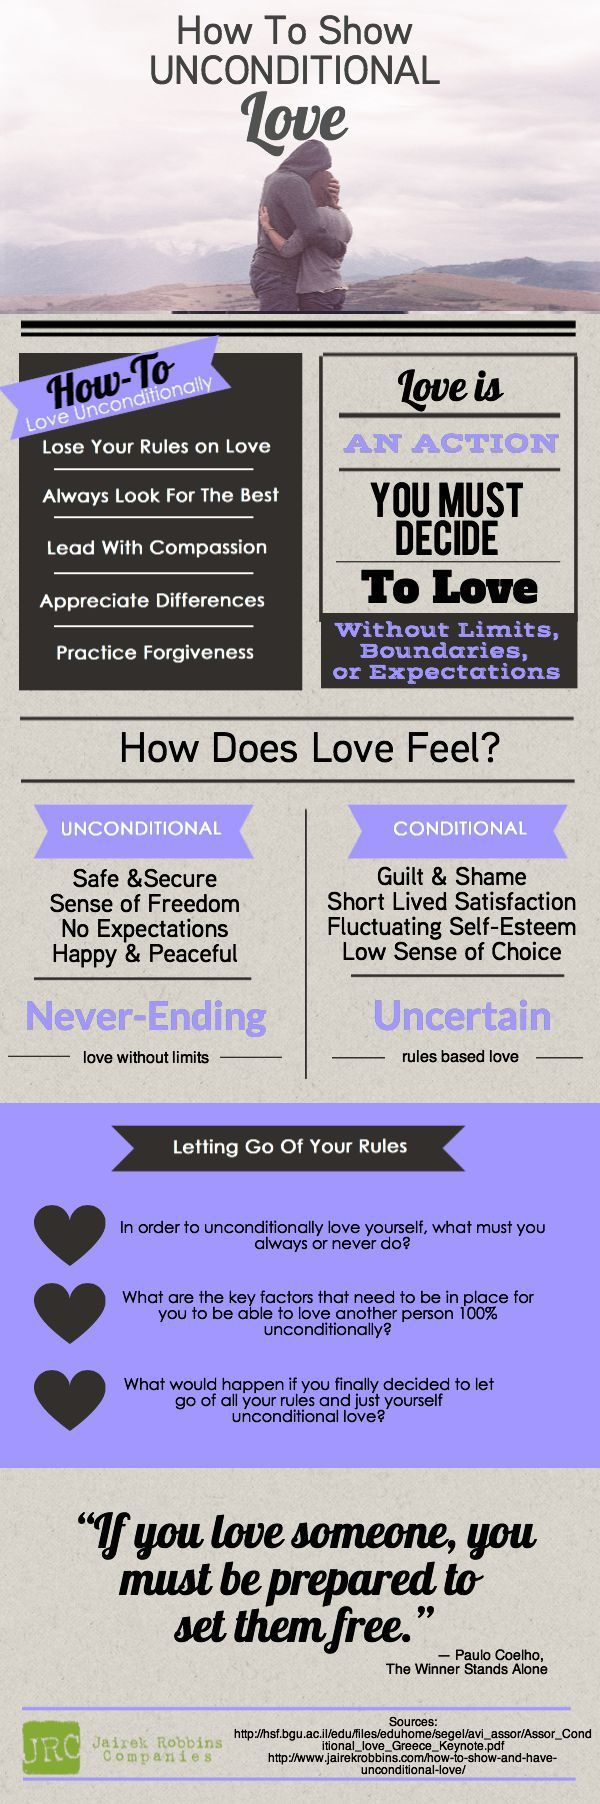 great dating advice and tips. its all about unconditional love. Great